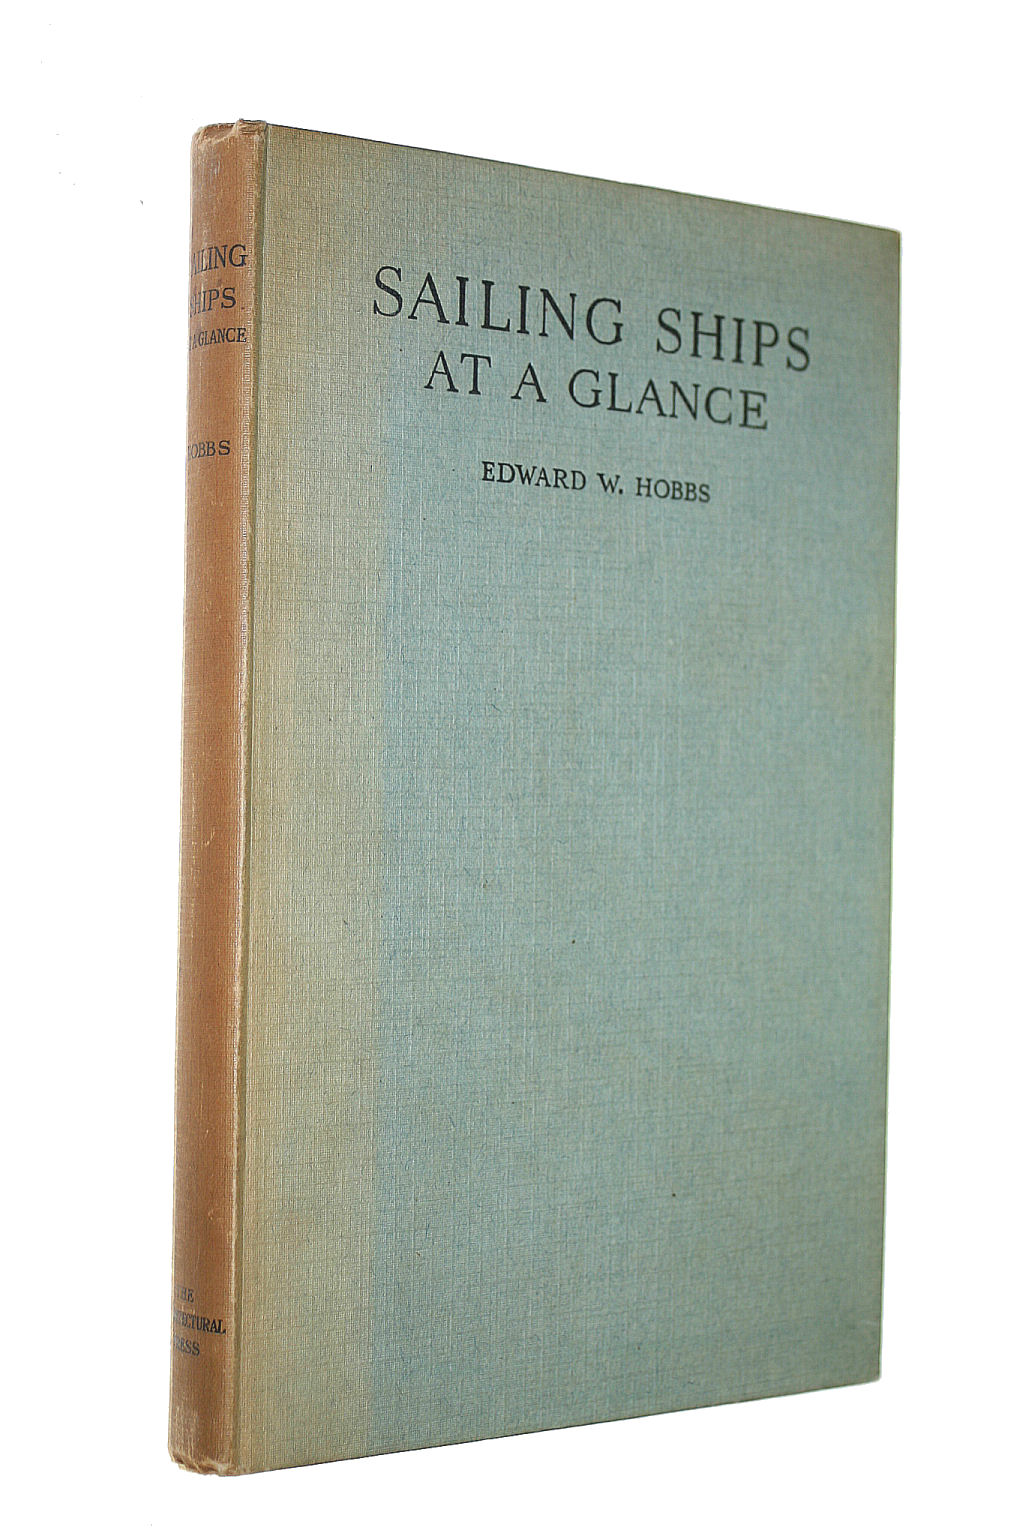 Image for Sailing Ships At A Glance, A Pictorial Record Of The Evolution Of The Sailing Ship From The Earliest Times Until Today